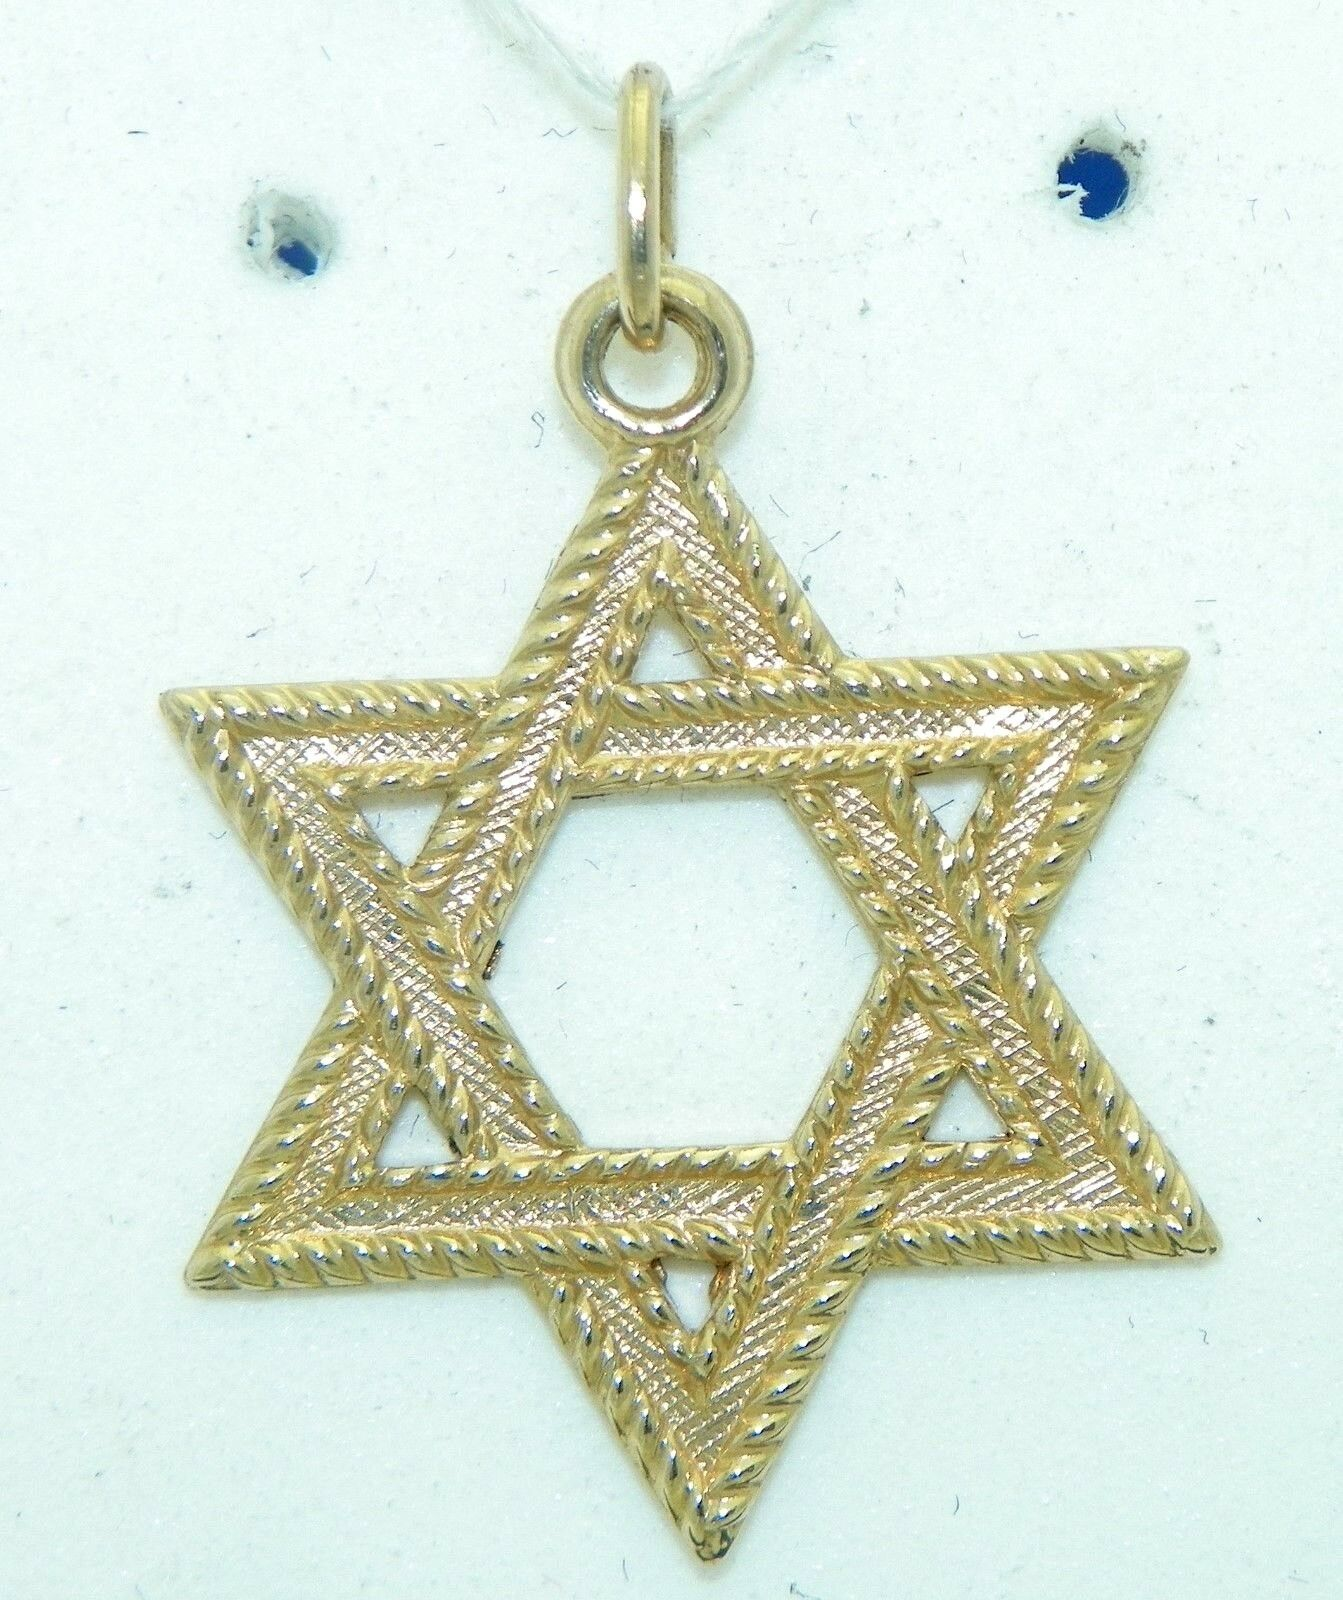 STAR OF DAVID PENDANT REAL SOLID 14 K gold 1.3 g